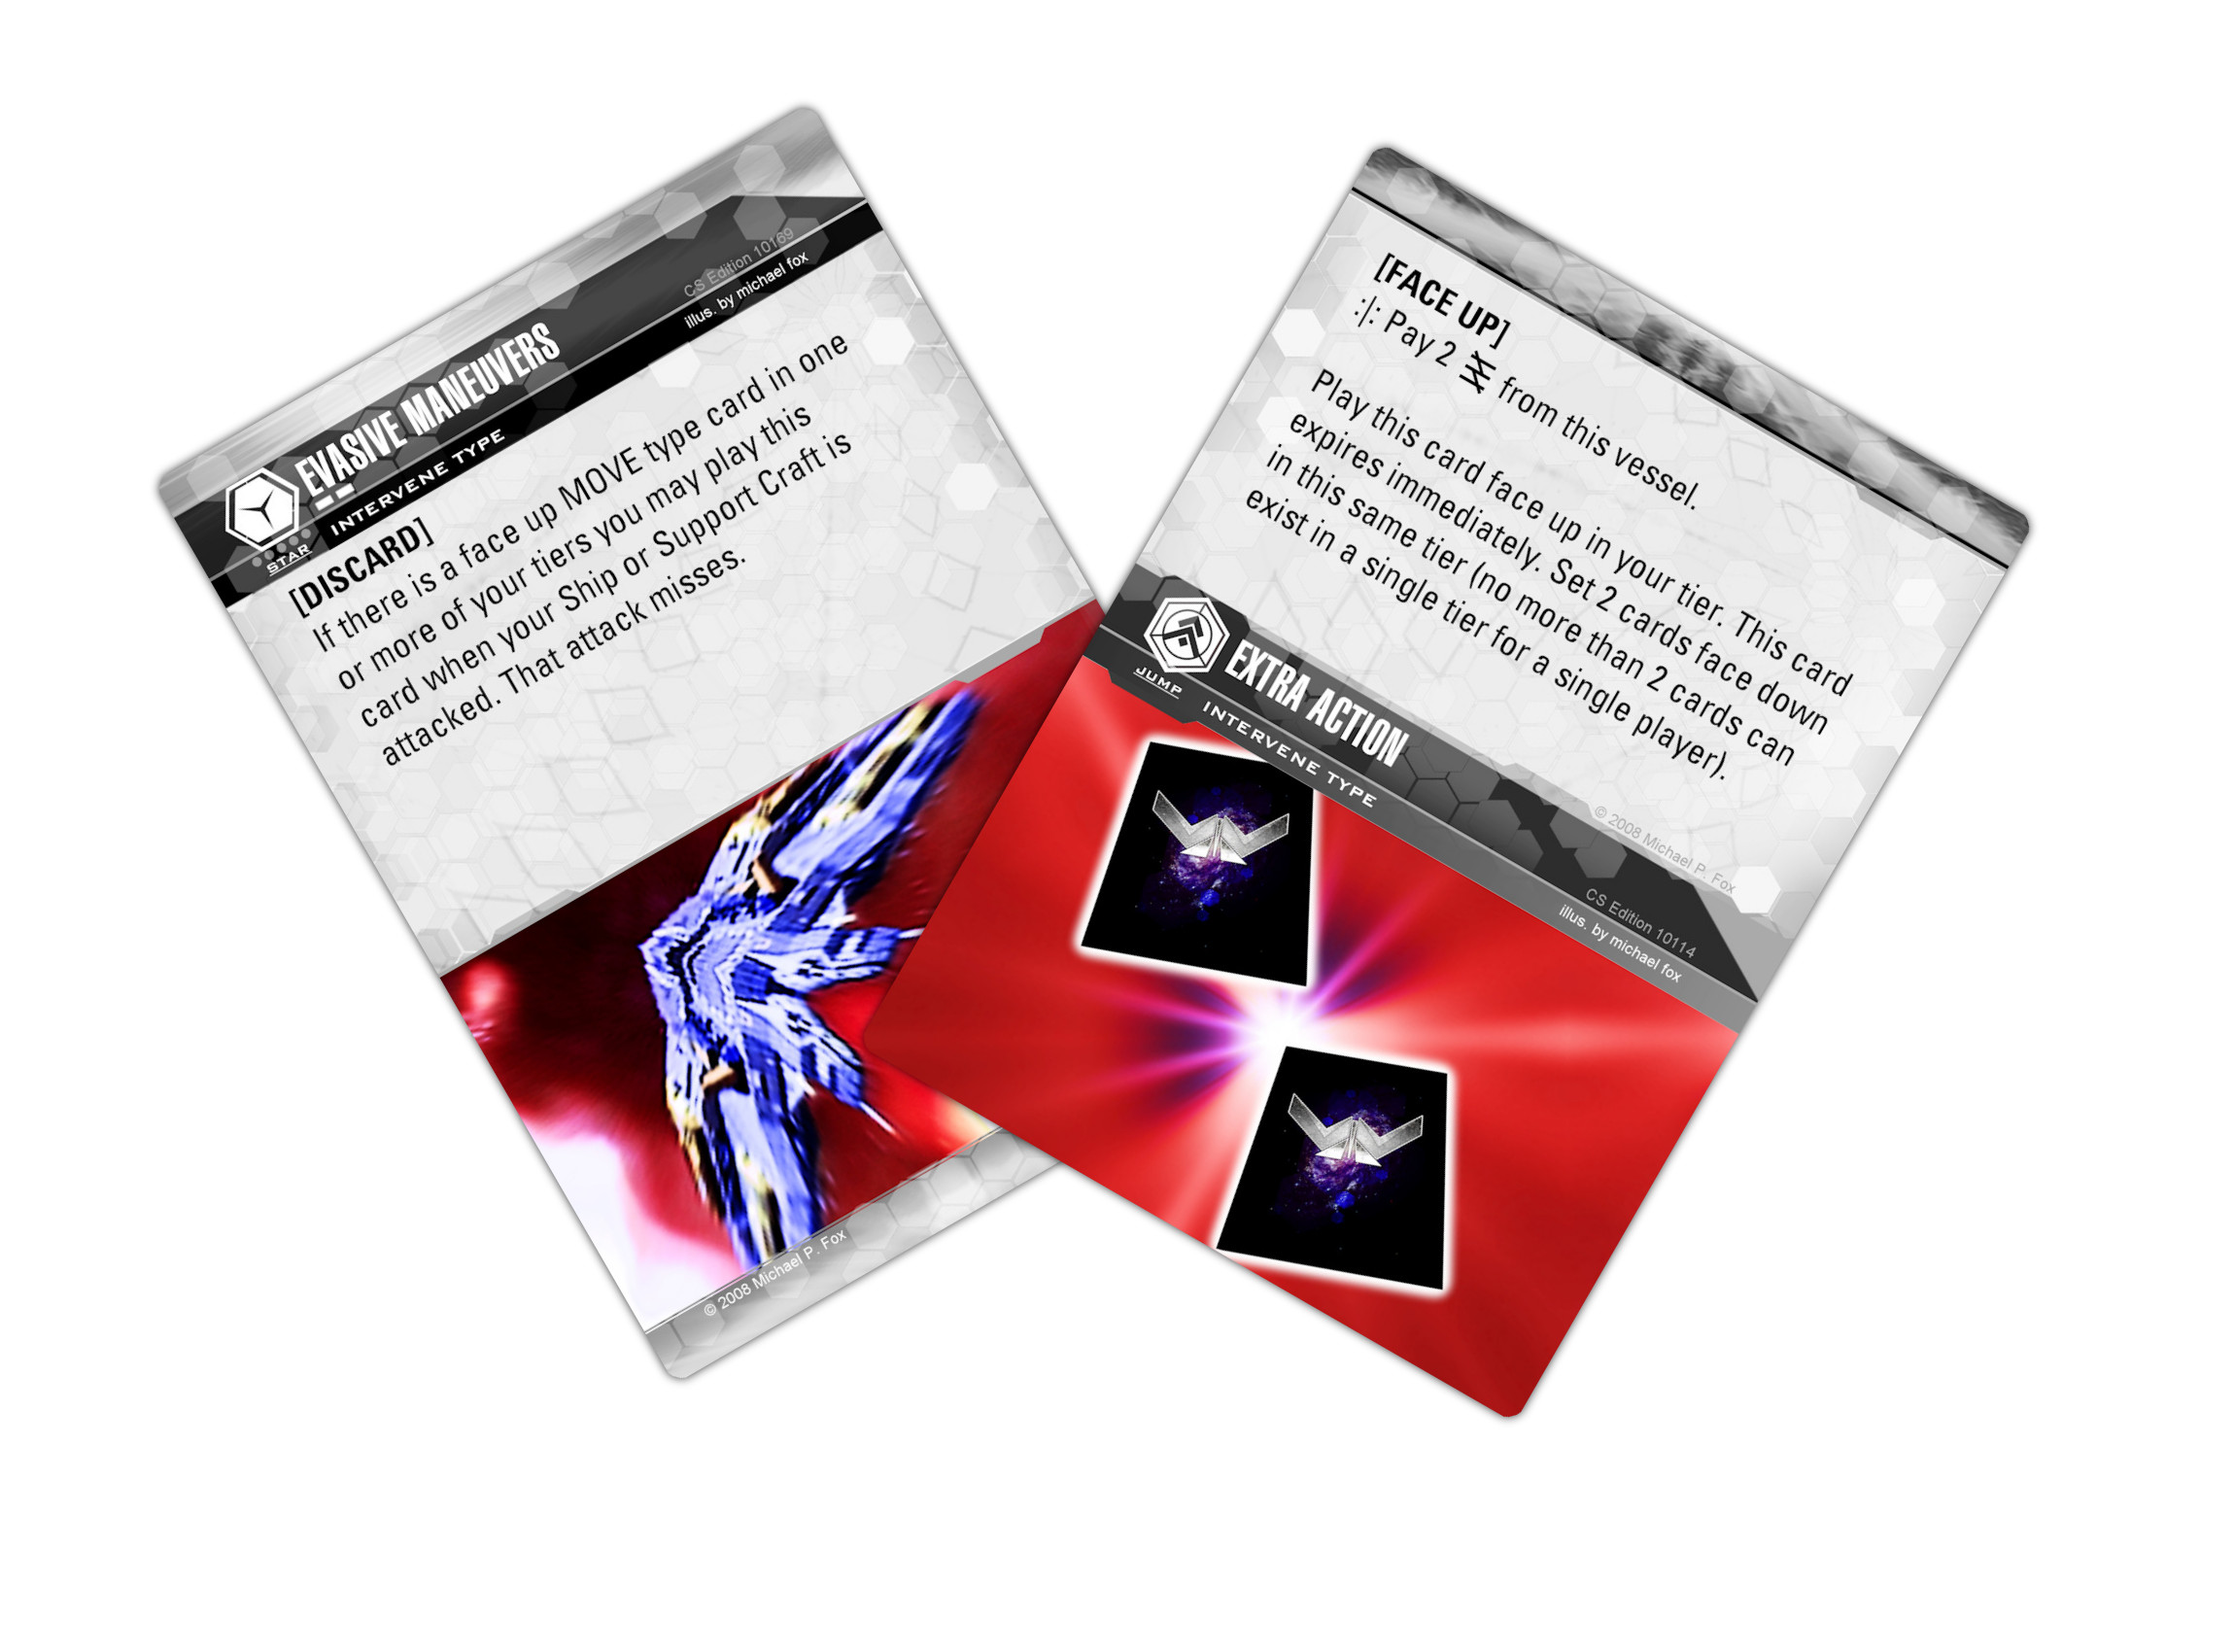 Dog Fight: Starship Edition card redesign